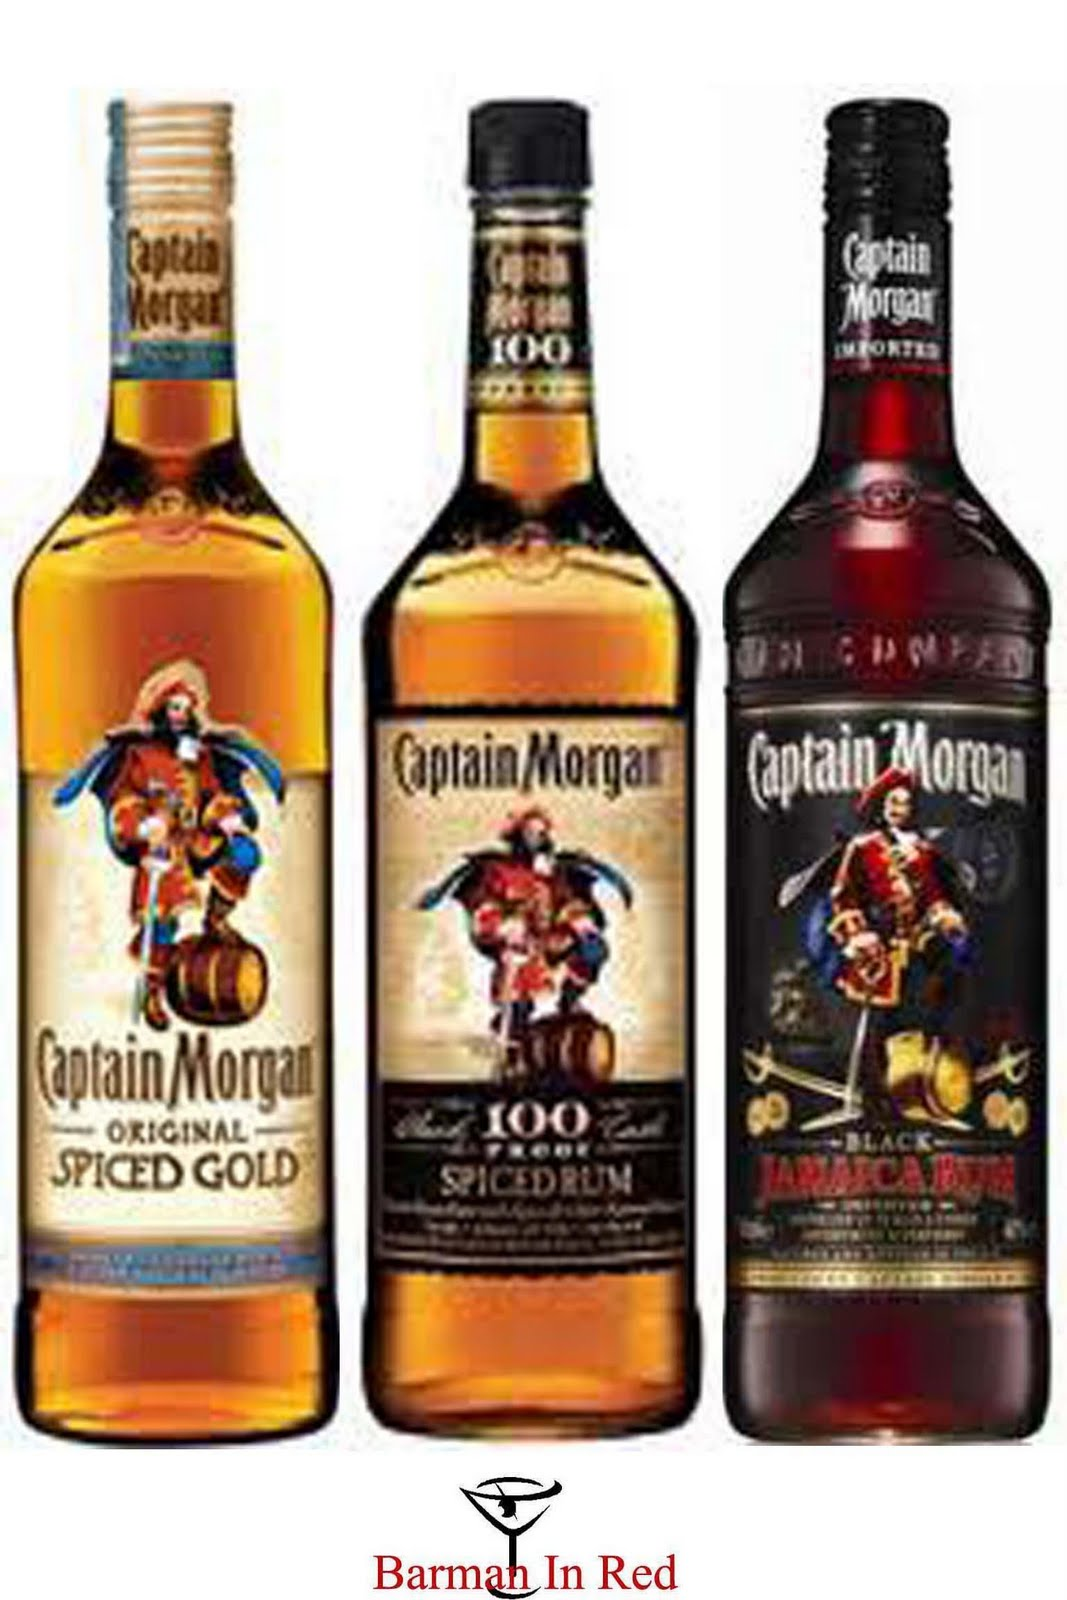 Located at wrigley field the captain morgan club offers fans an array